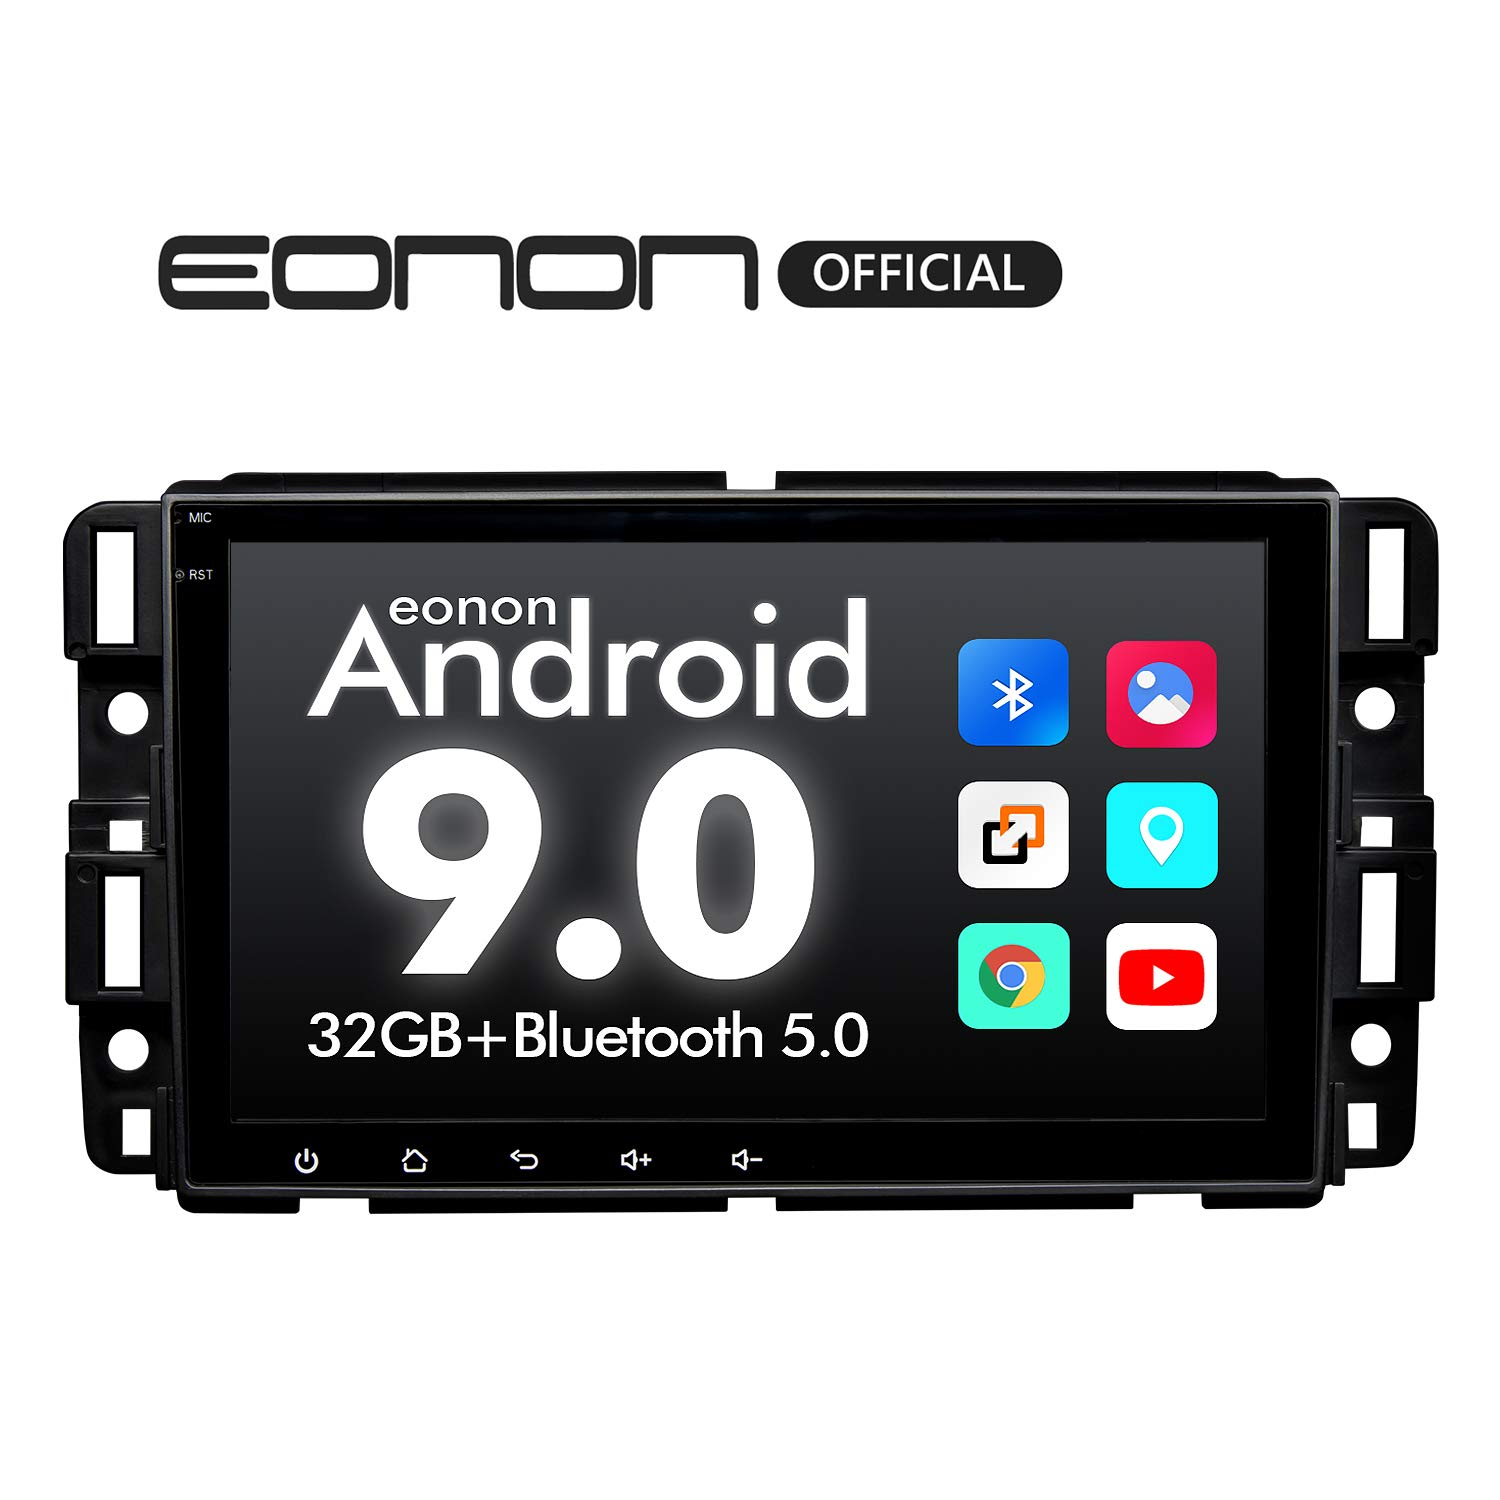 Car Stereo, Double Din Car Stereo, Eonon Car Stereo with Bluetooth 8 Inch Car Radio GPS Navigation for Car Support Android Auto/Apple Carplay/Bluetooth 5.0/Fast Boot/DVR/Backup Camera/OBDII-GA9380 by Eonon